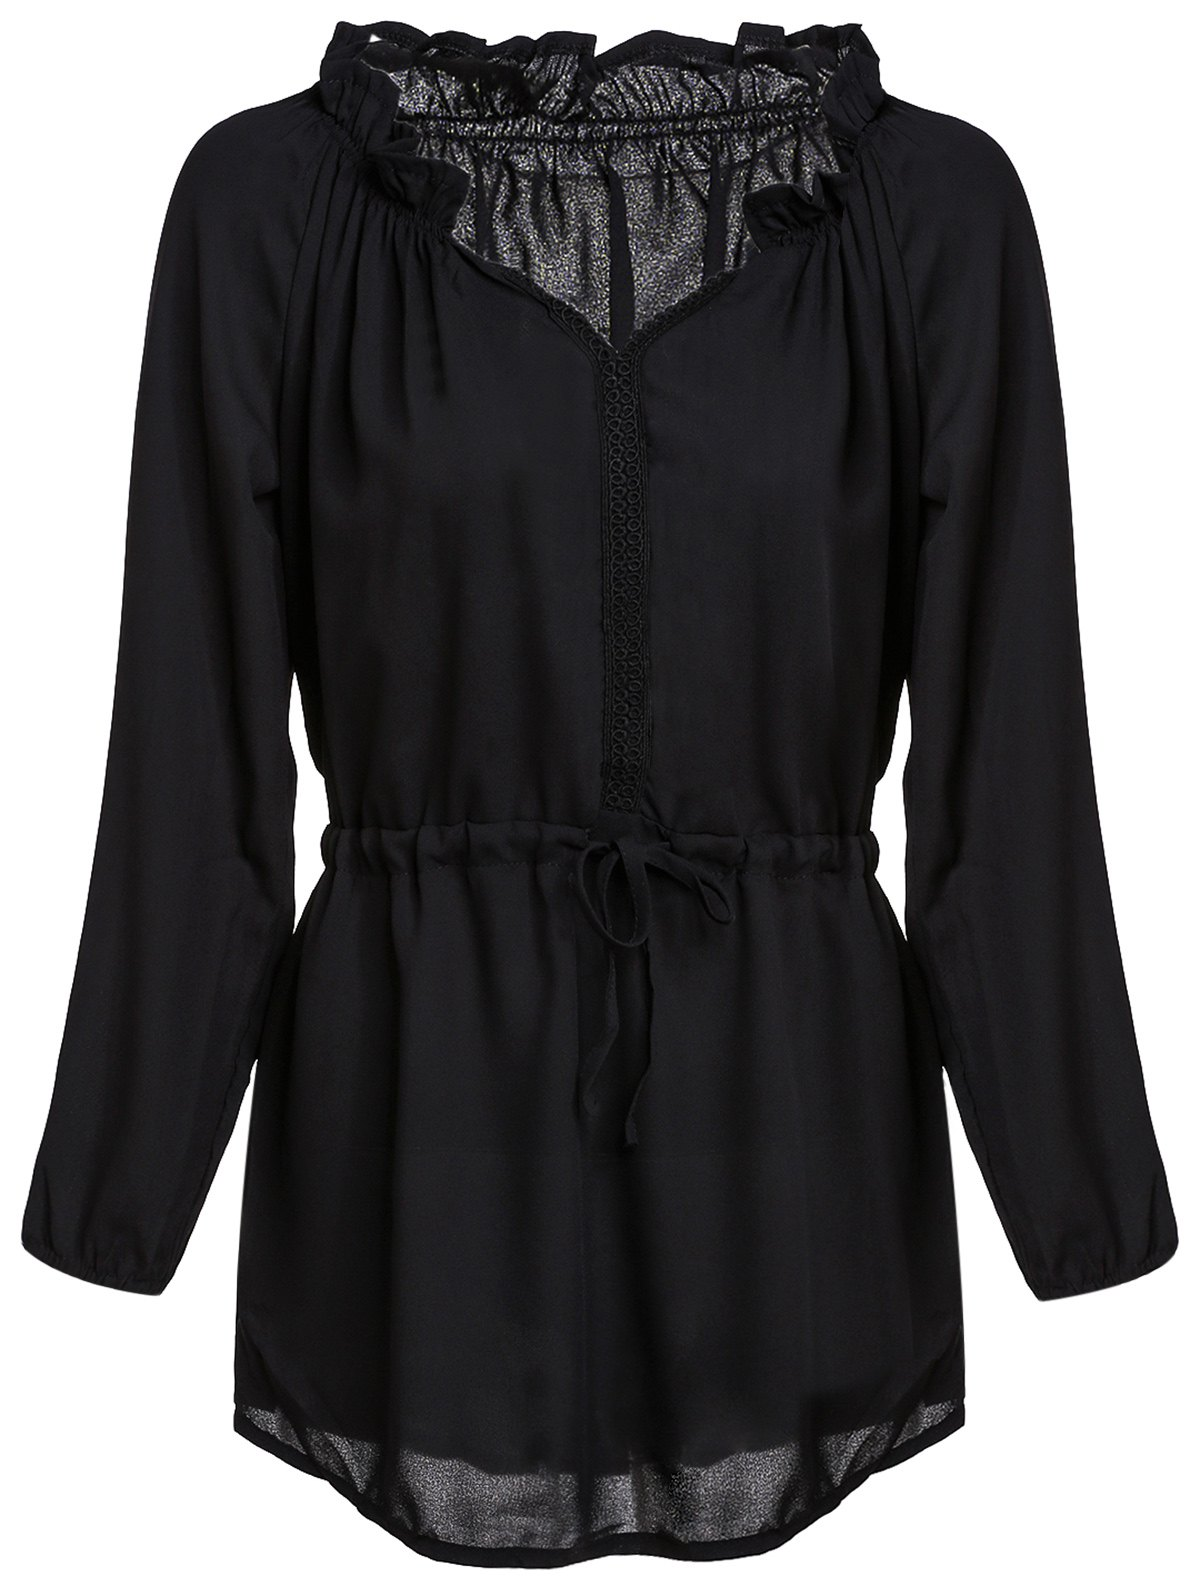 Charming Black V-Neck 3/4 Sleeve Waist Drawstring Pleated Dress For Women